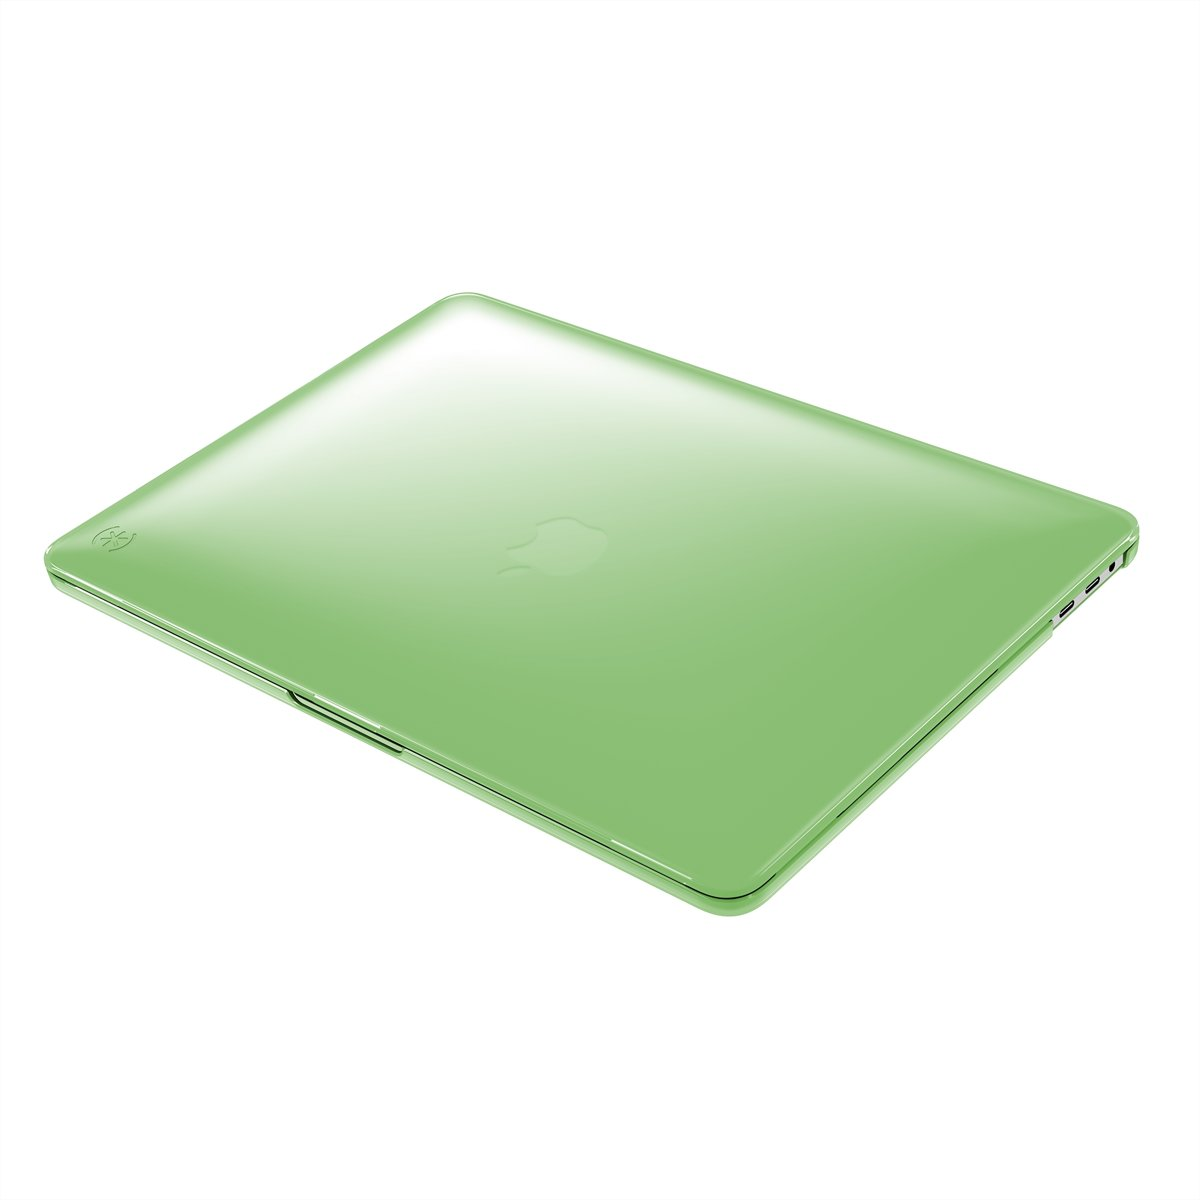 Speck MacBook Pro 15 inch W/TB SmartShell (2016) - Dusty Green